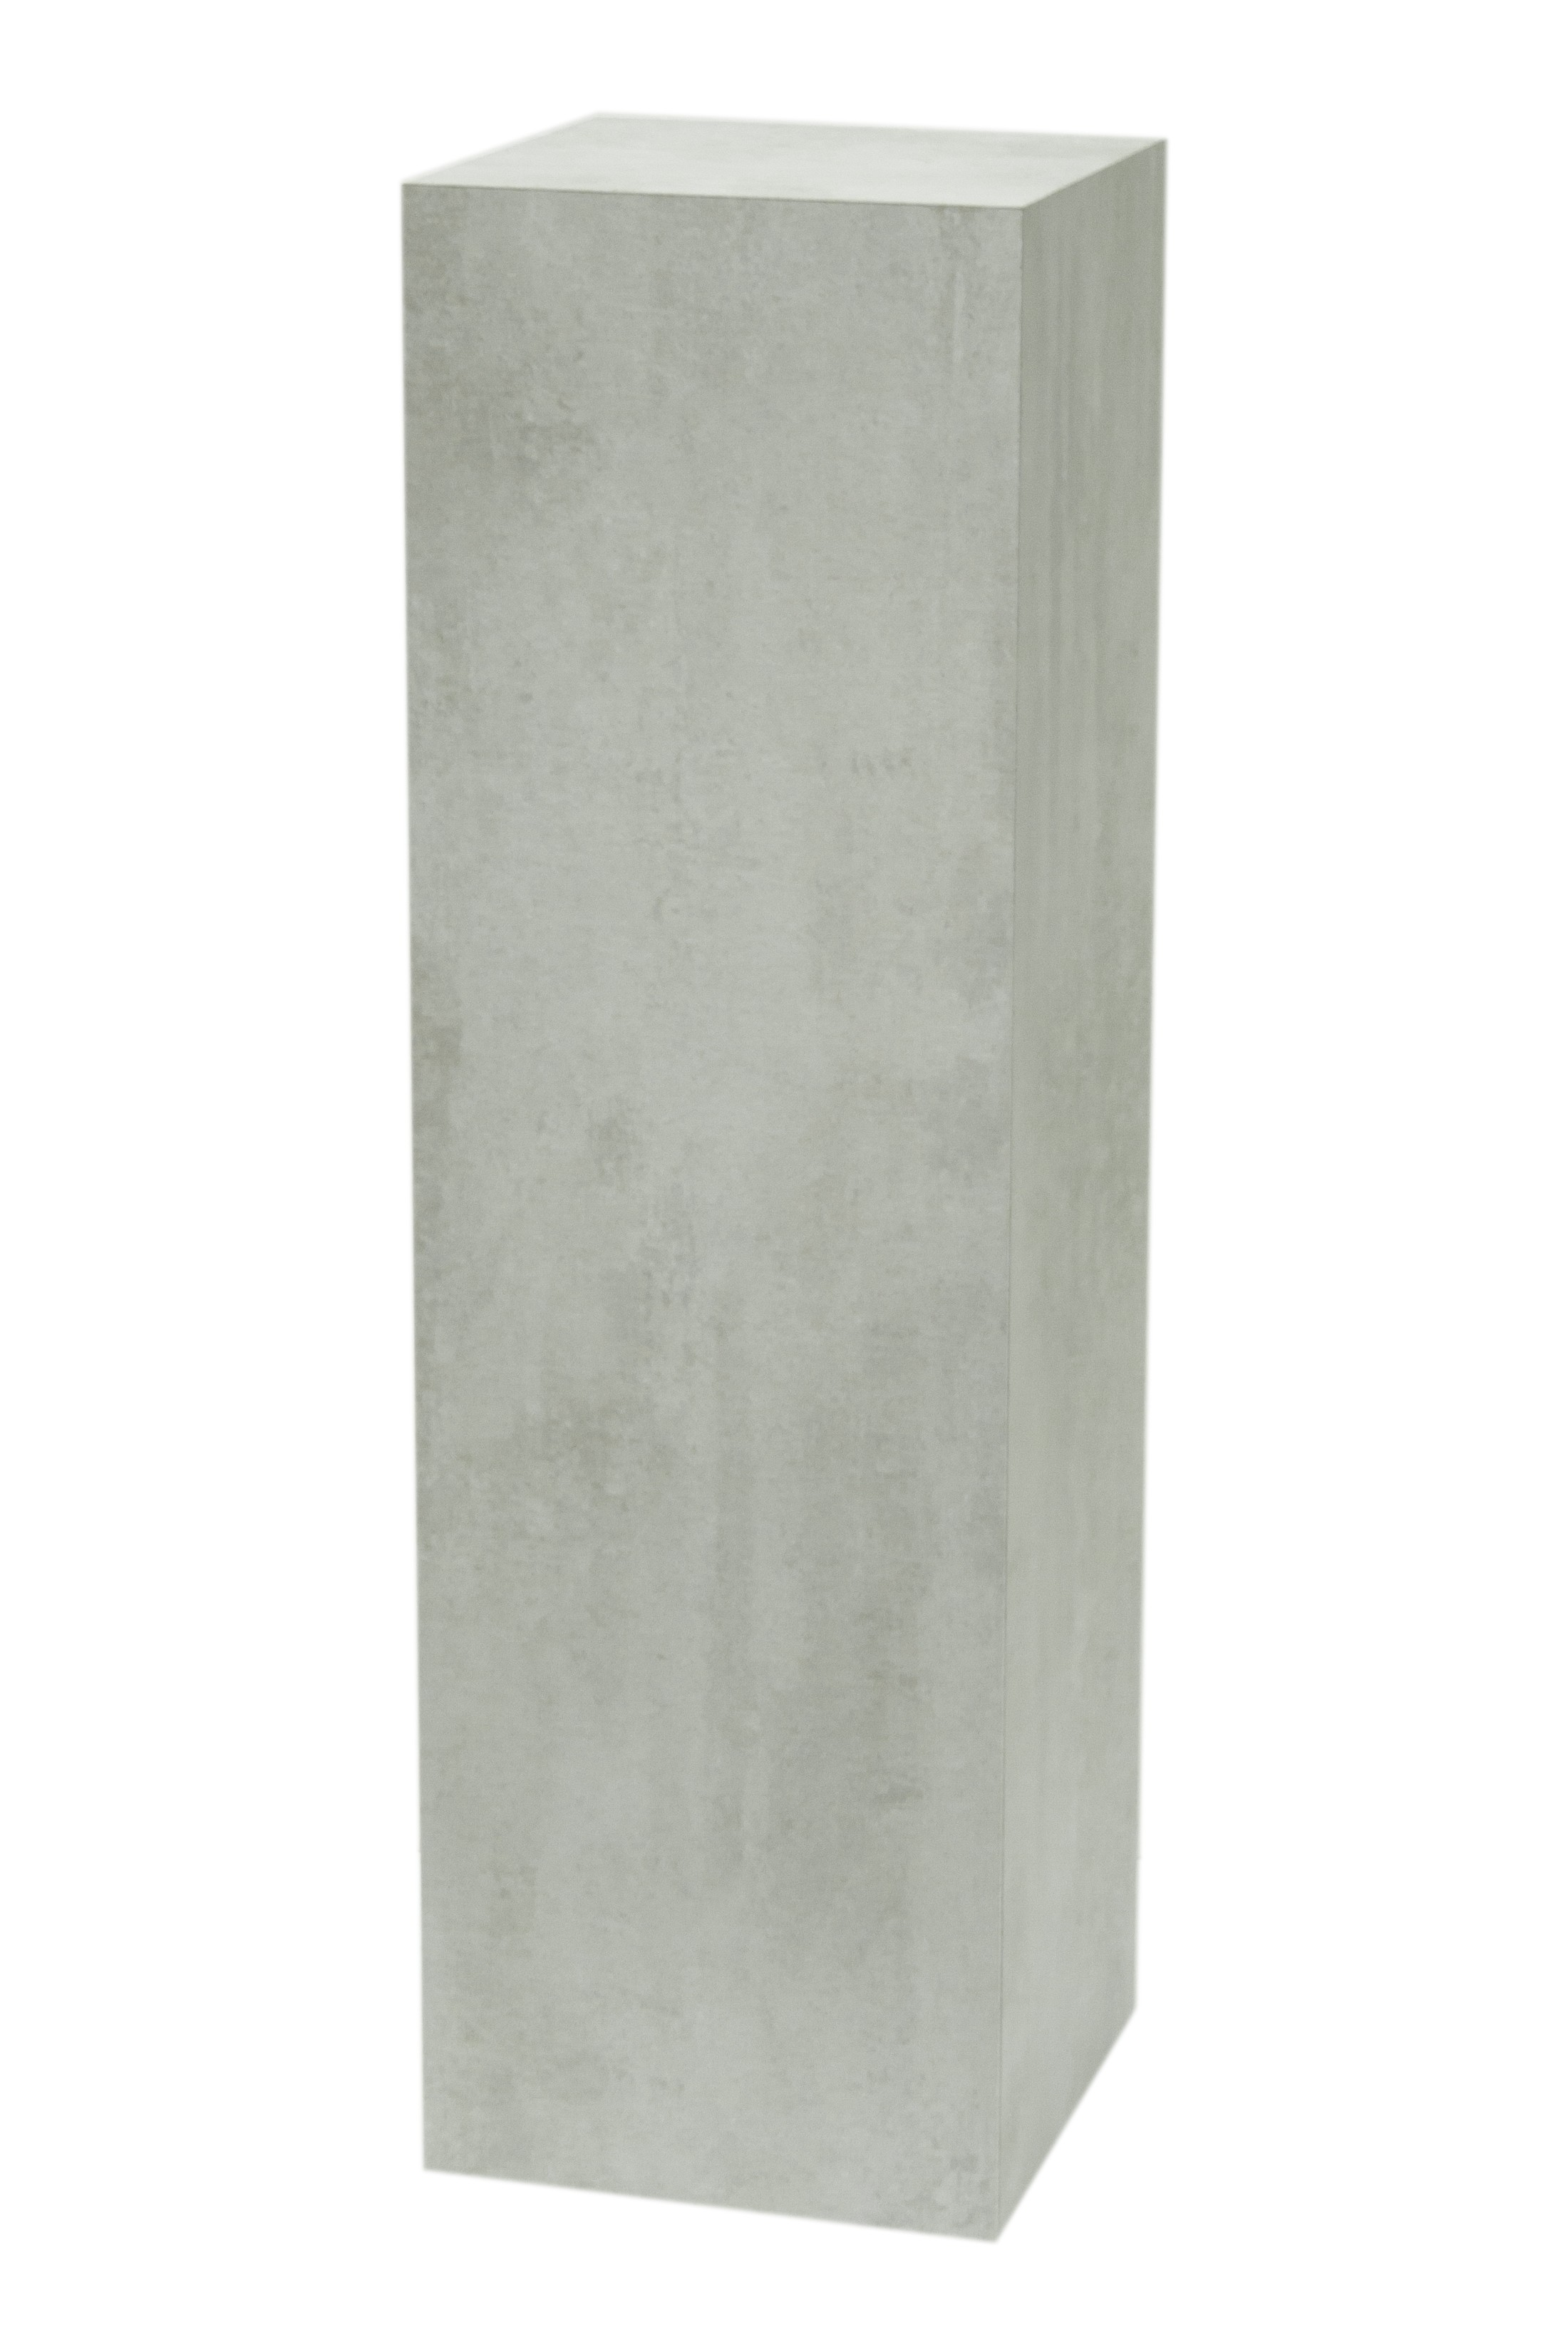 Solits plinth concrete look